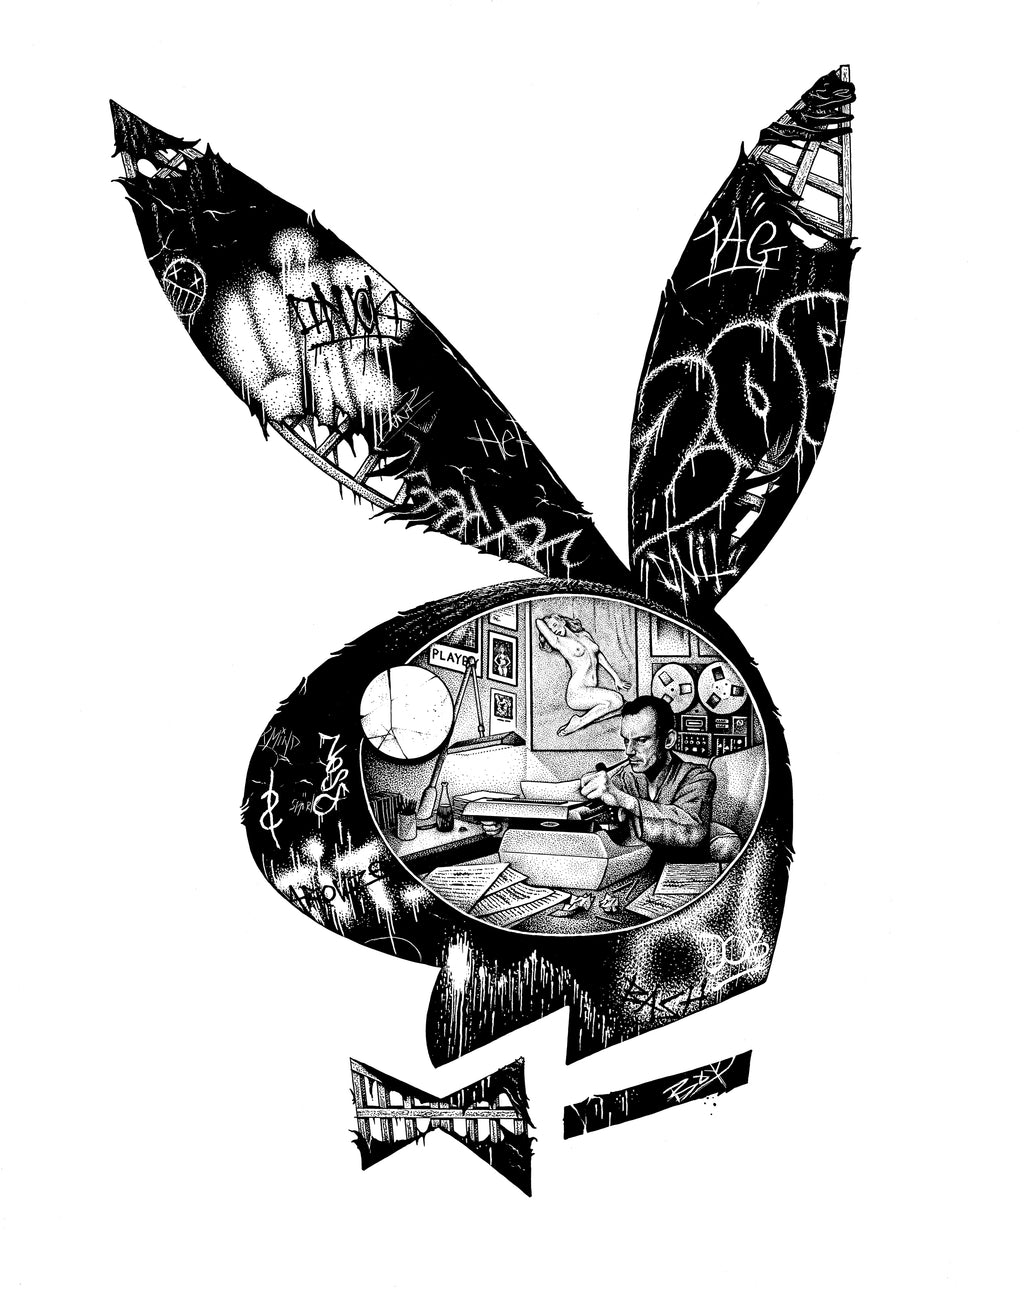 'Playboy' Giclee archival print